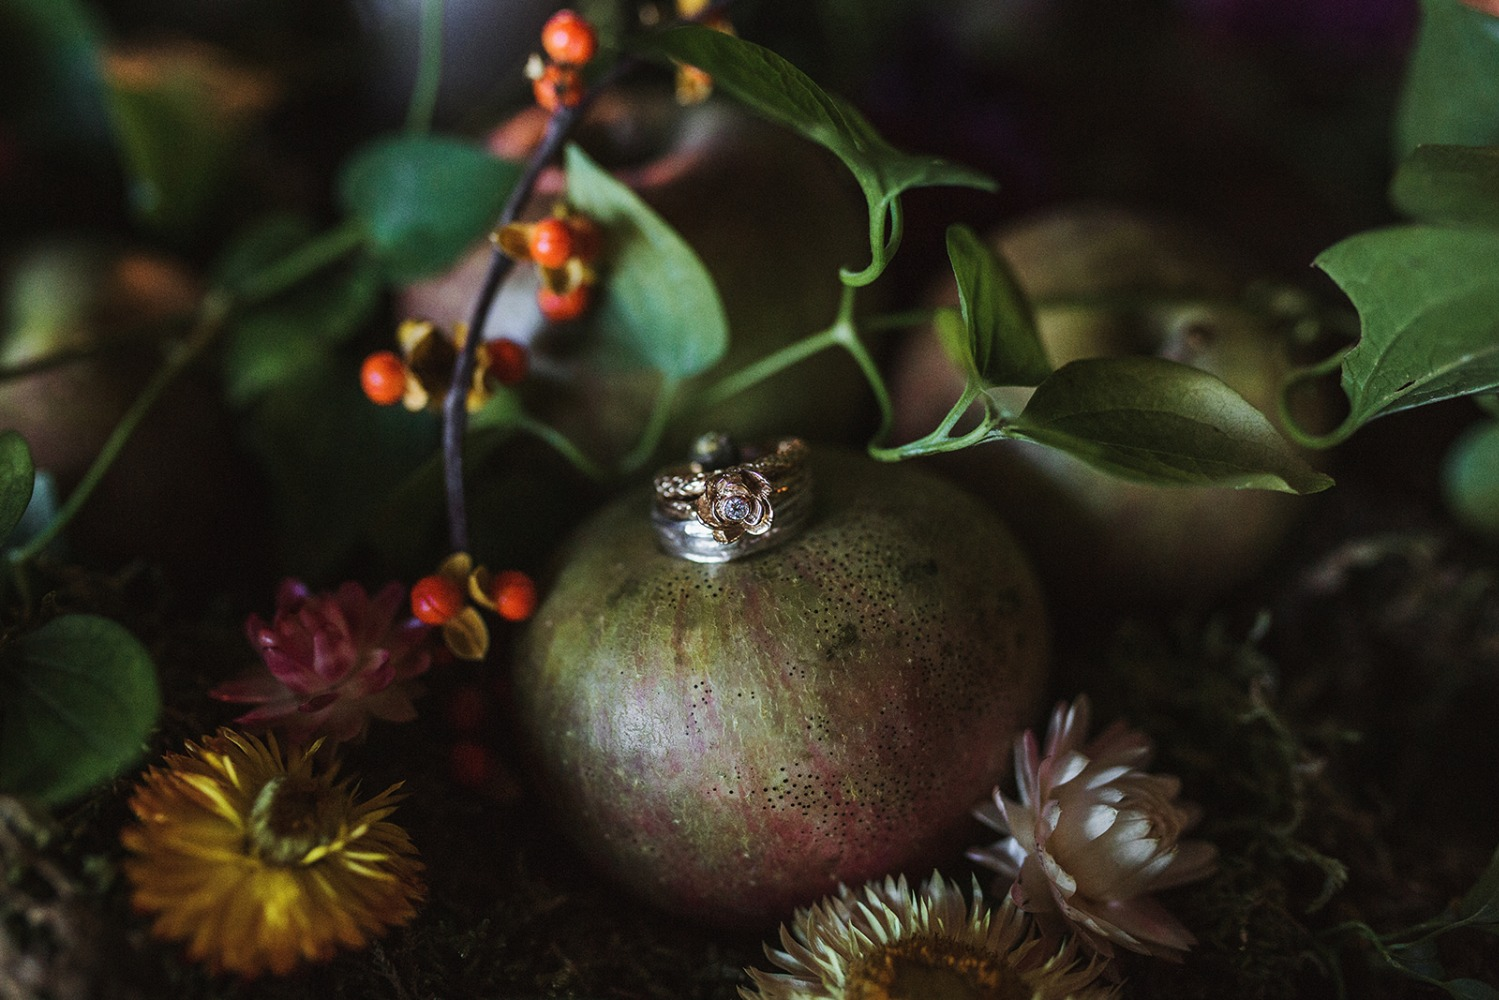 wedding rings on a pomegranate